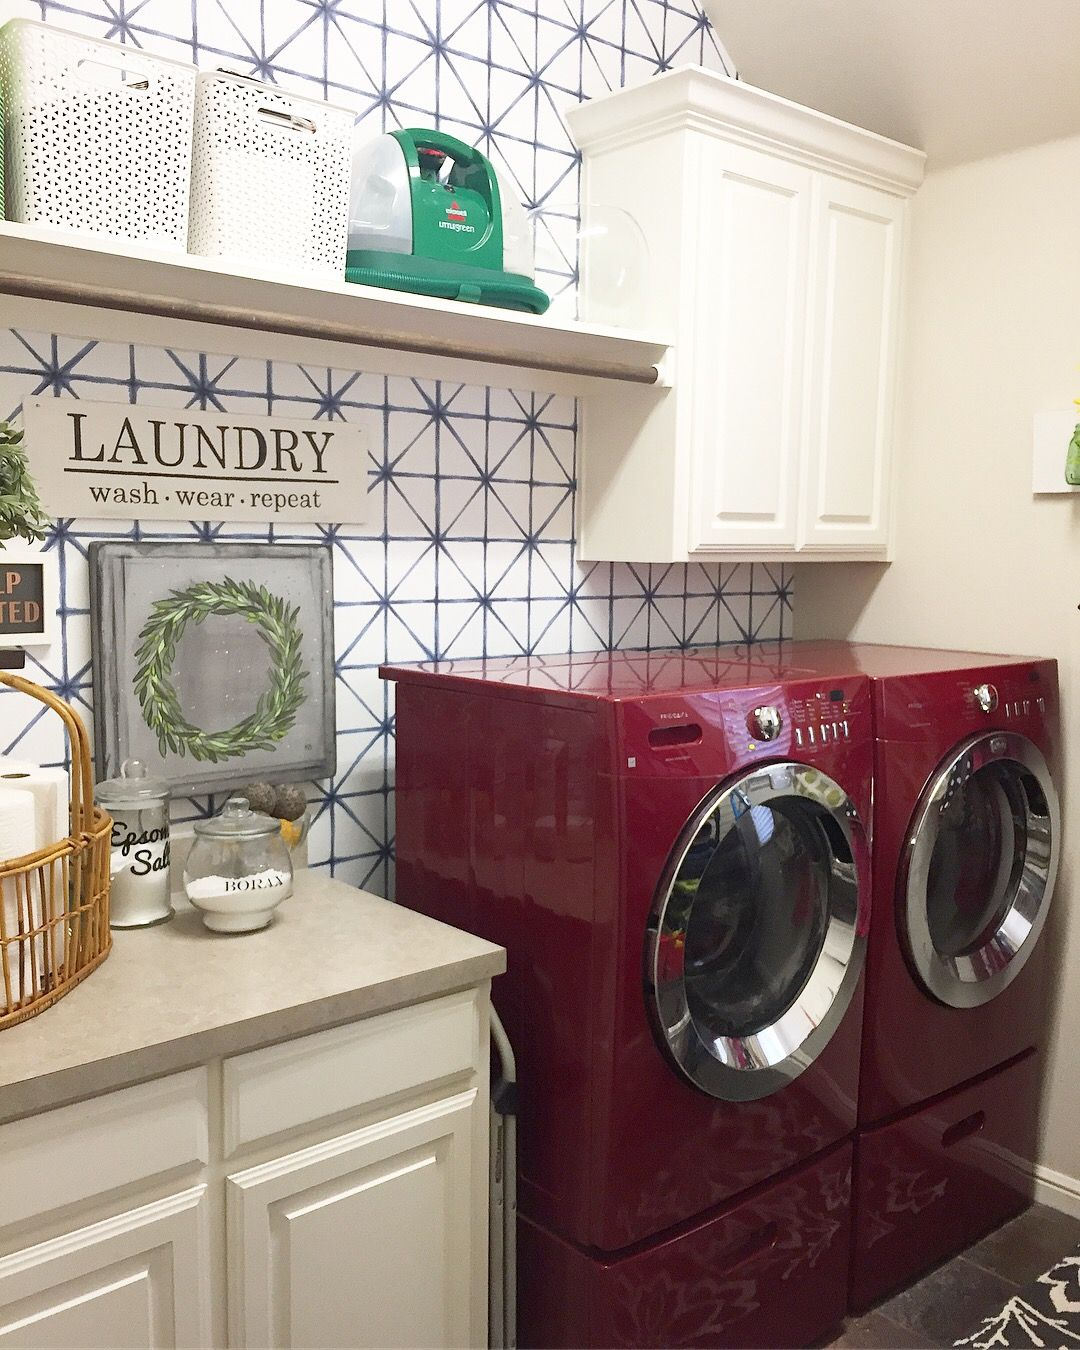 Wallpapered Focal Wall In Laundry Room Roommates Modern Abstract Blue Peel And Stick Wallpaper Laundry Room Focal Wall Room